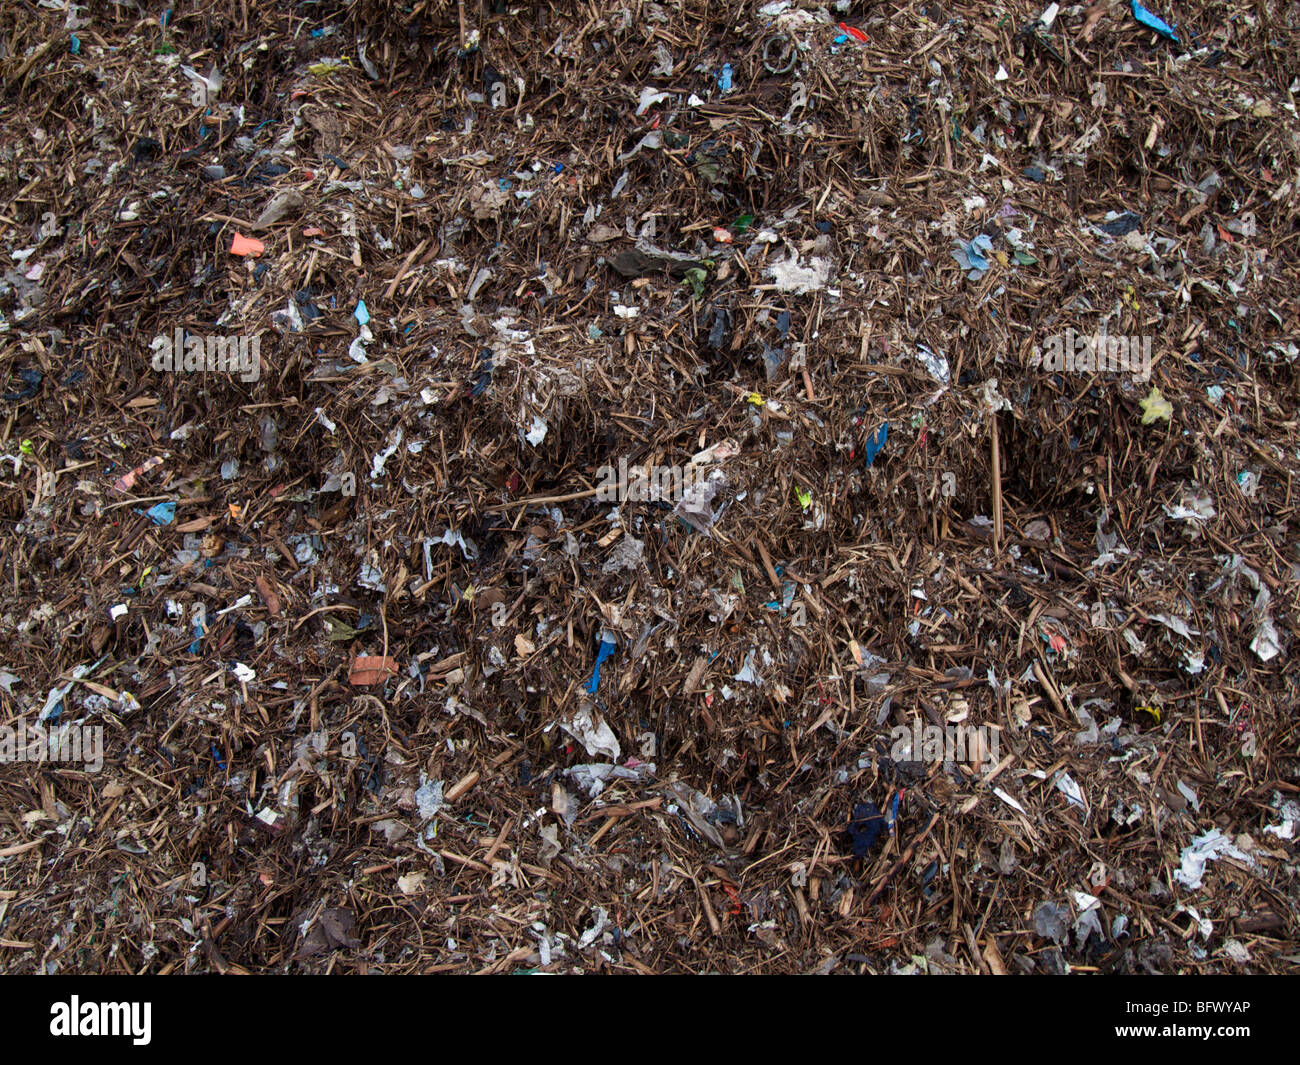 Biomass ready to be burned in a green energy powerplant. Essent composting plant, Maastricht, Zuid Limburg, the Netherlands Stock Photo